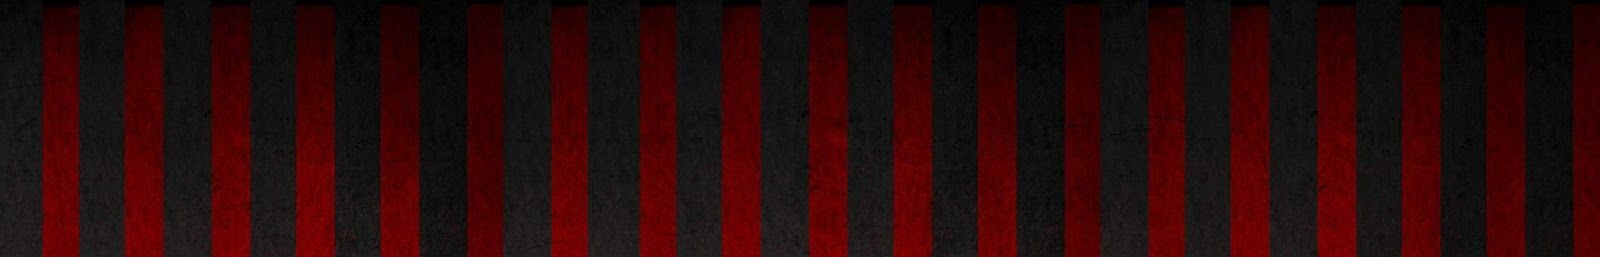 cropped-red-and-black-striped-wallpaper.jpg